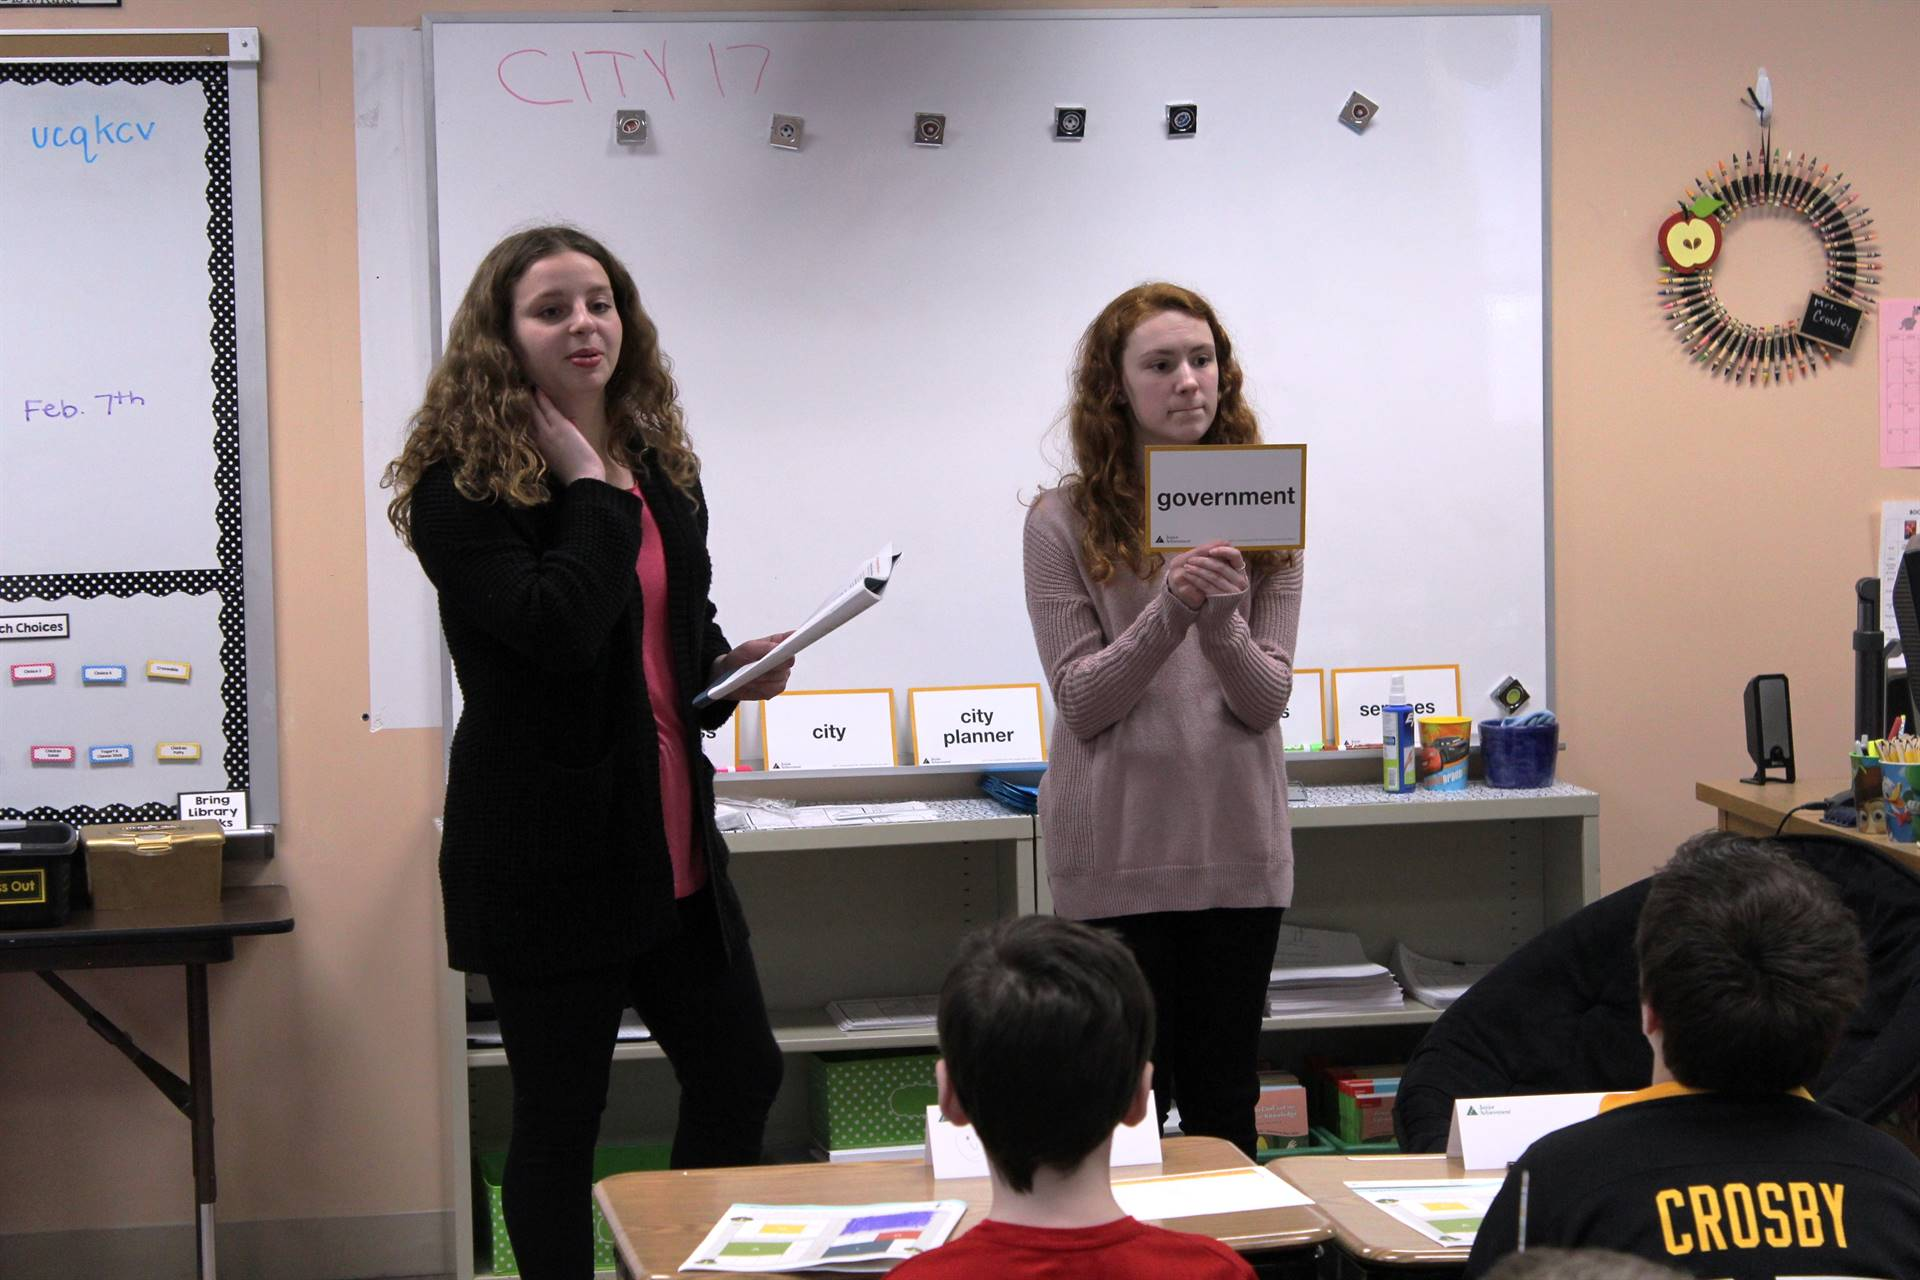 BPHS students teaching a lesson